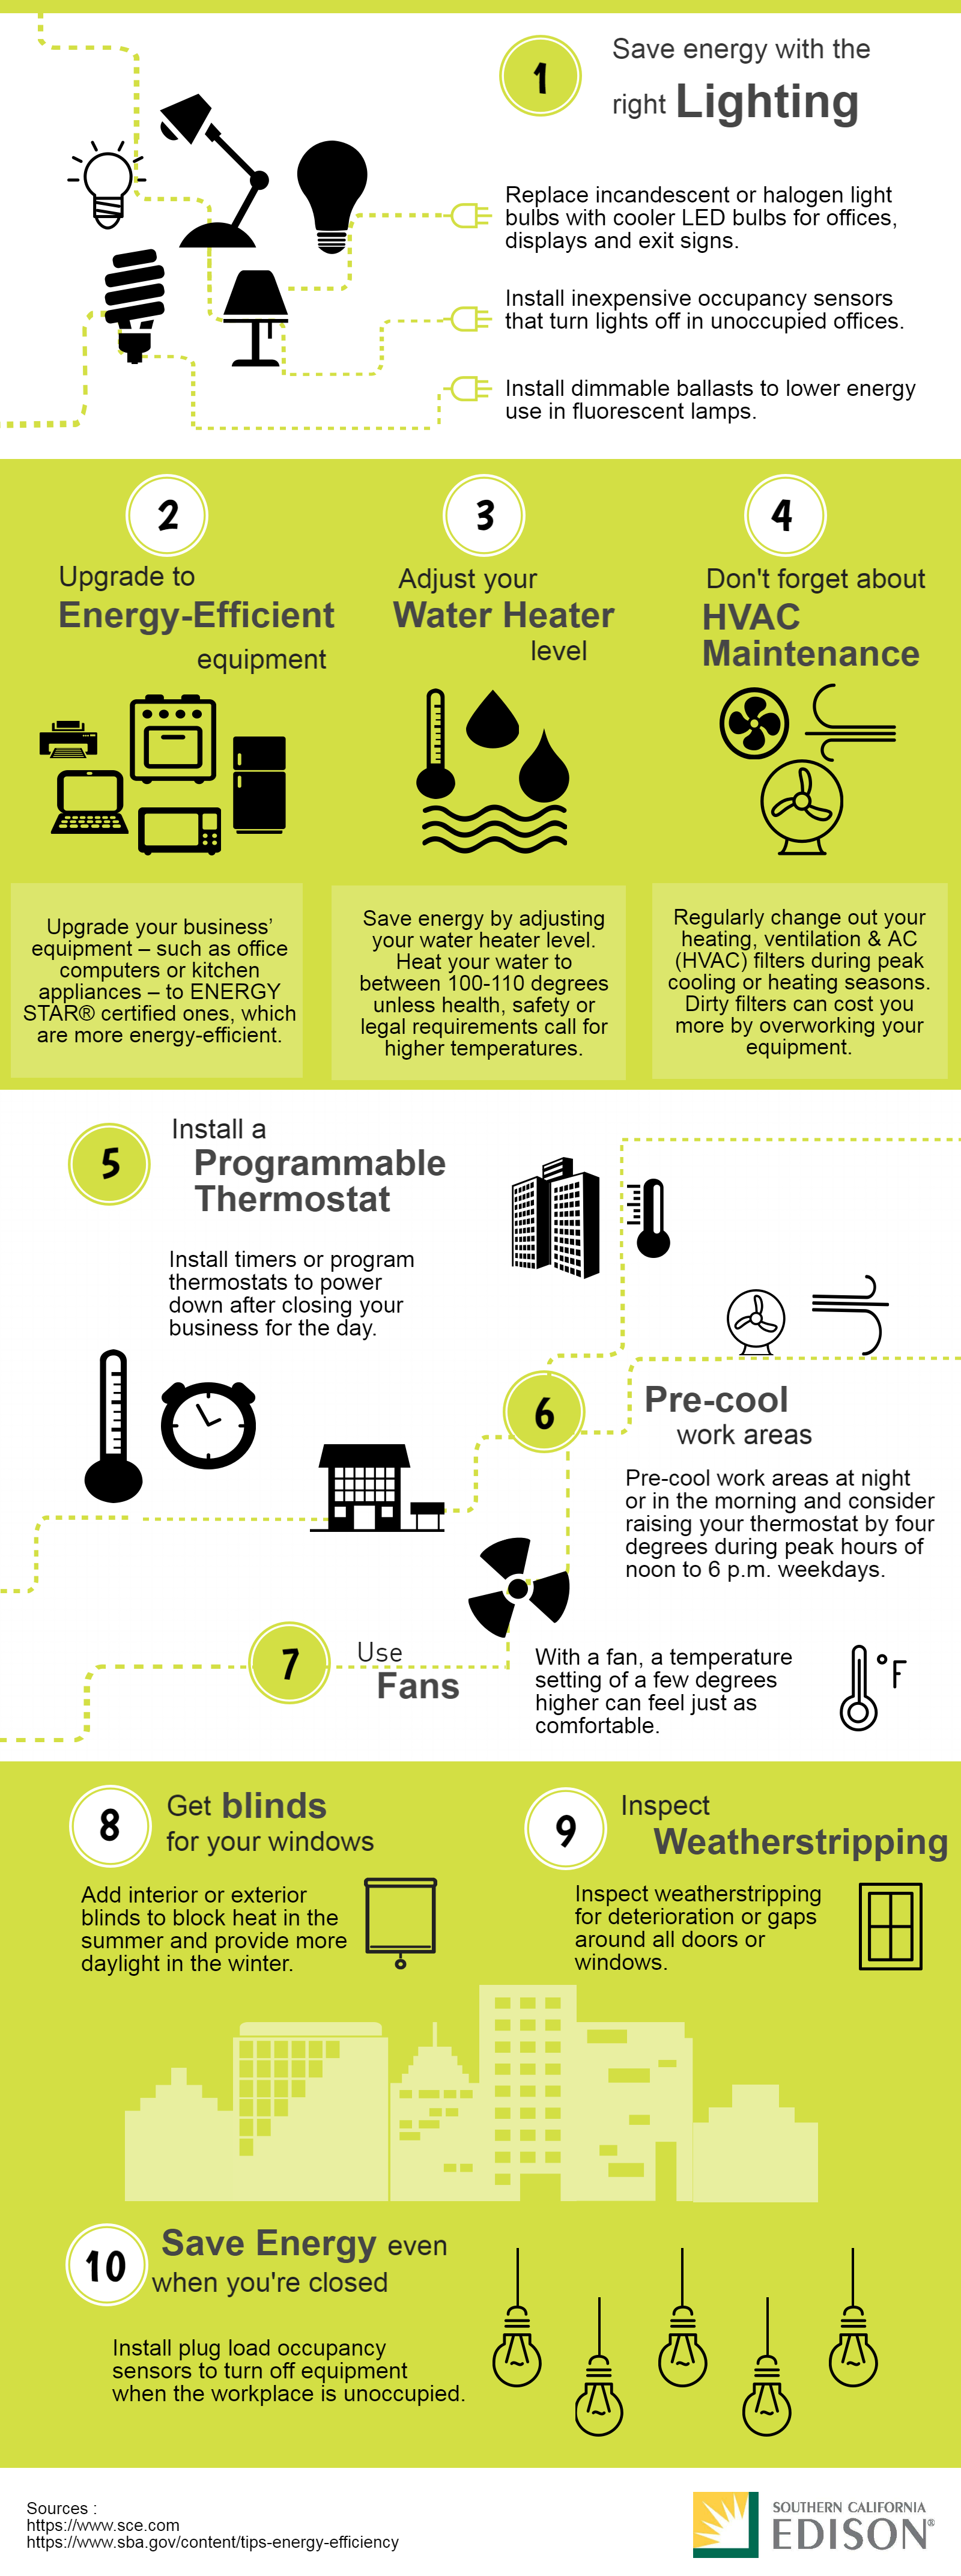 Business Energy Tips infographic